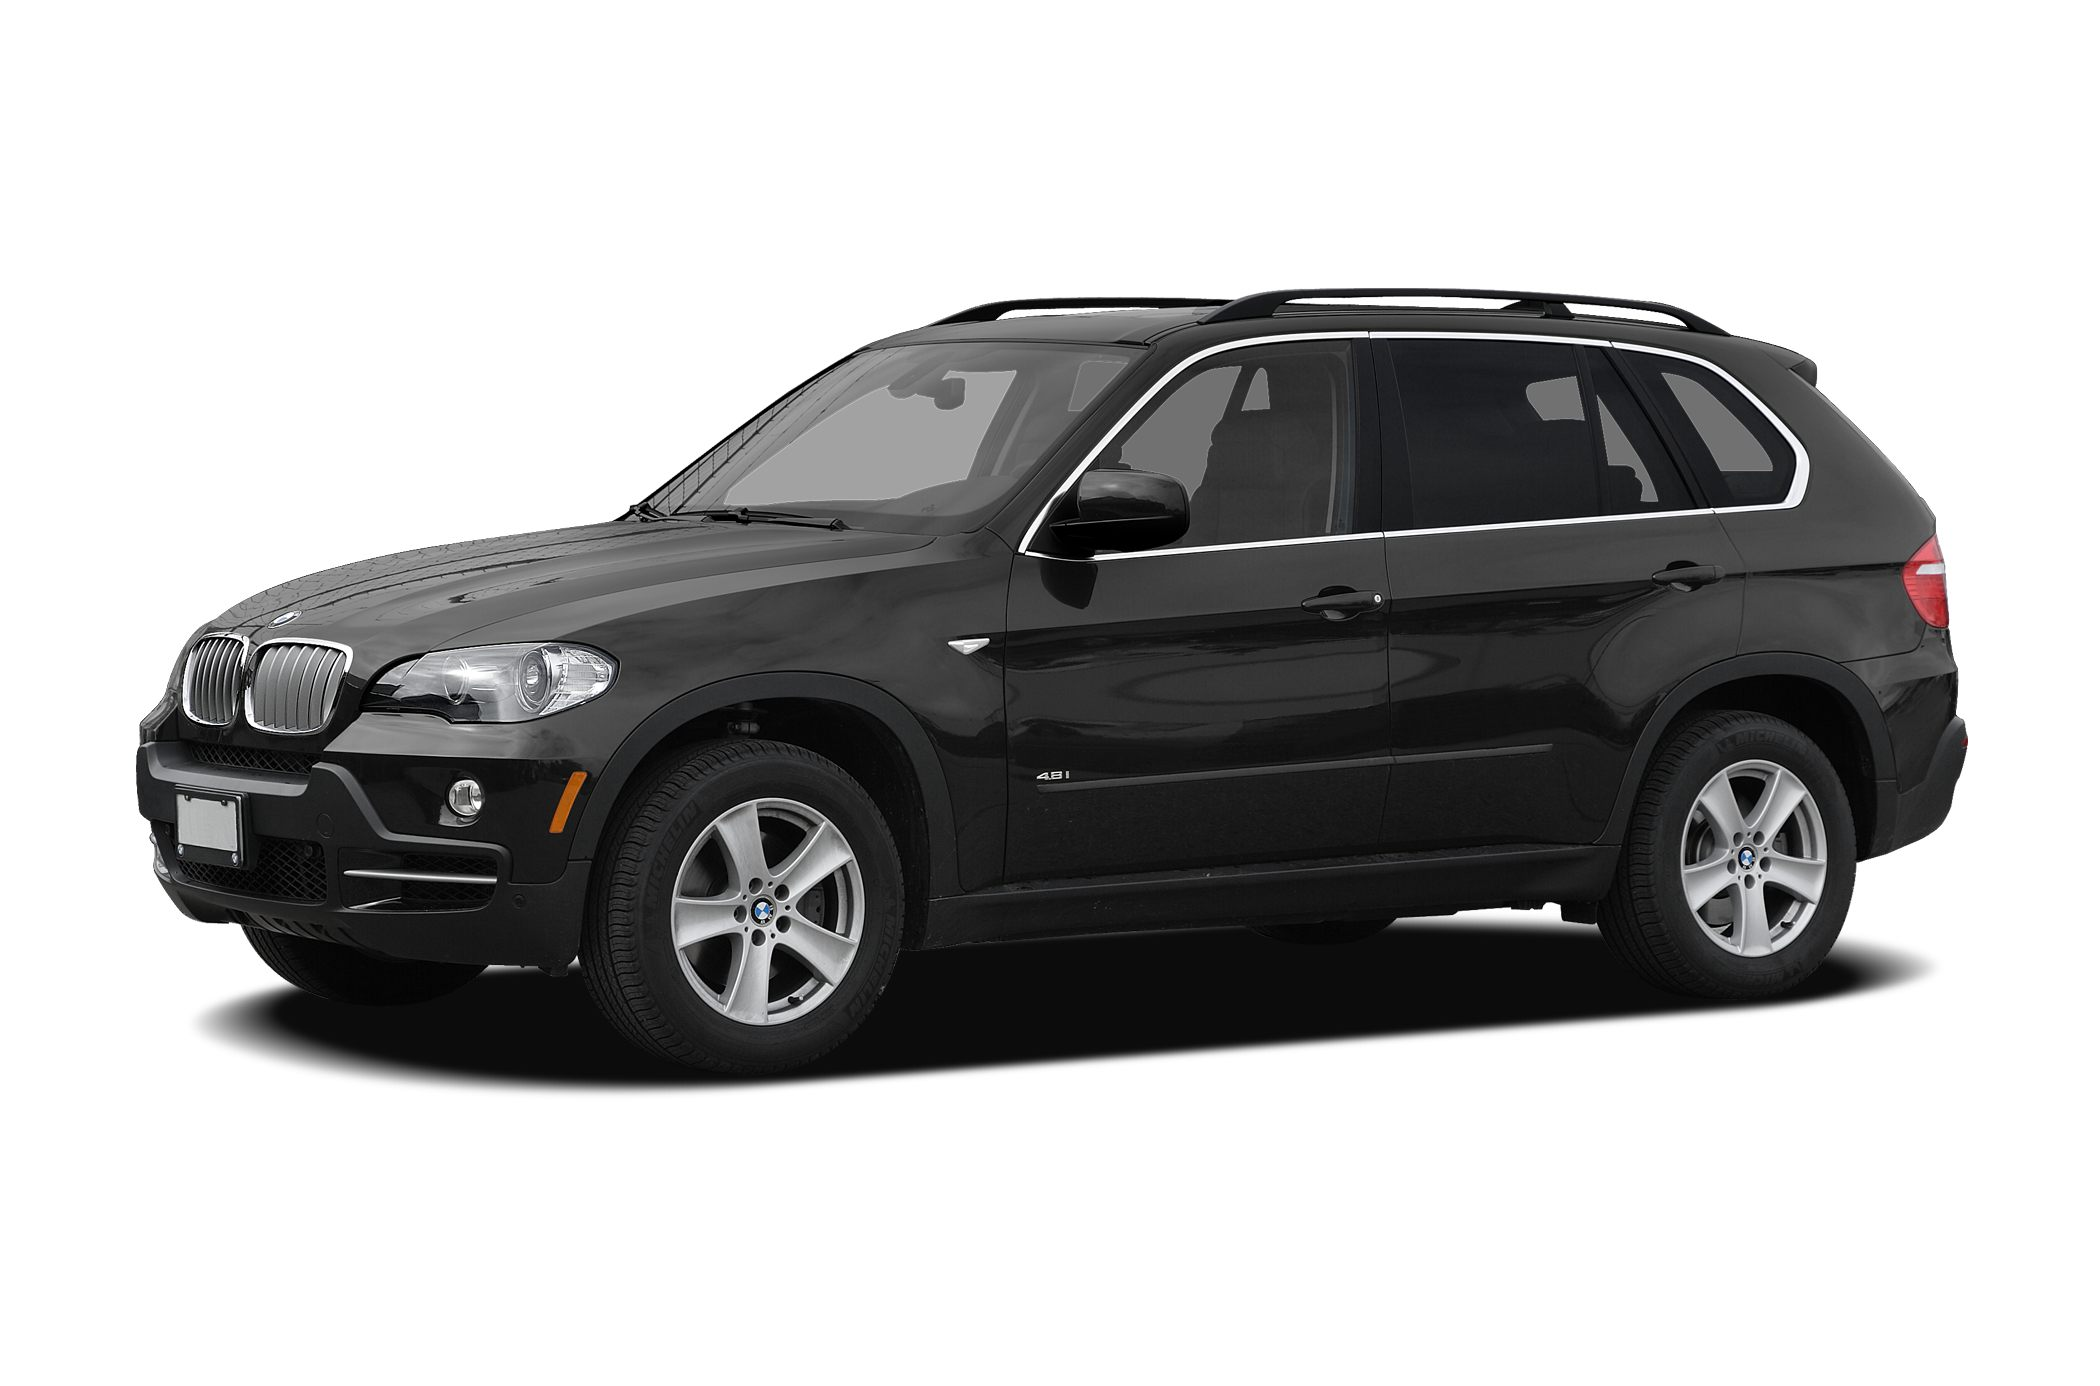 2007 BMW X5 48i Moonroof Youll NEVER pay too much at Route 44 Toyota Scion Why pay more for les